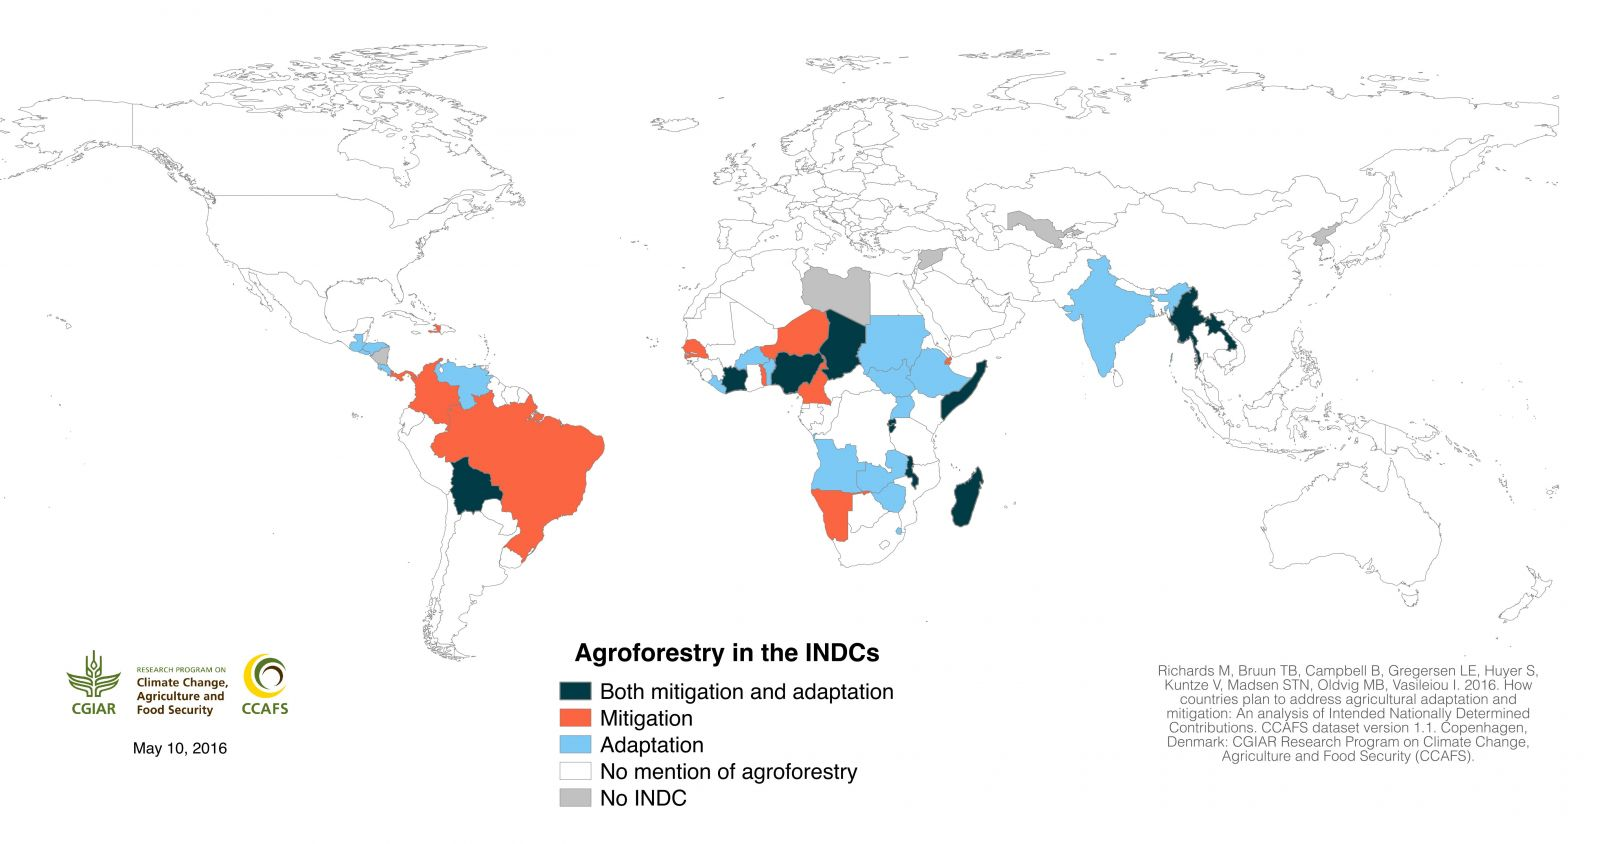 Agroforestry in the INDCs (click to enlarge)